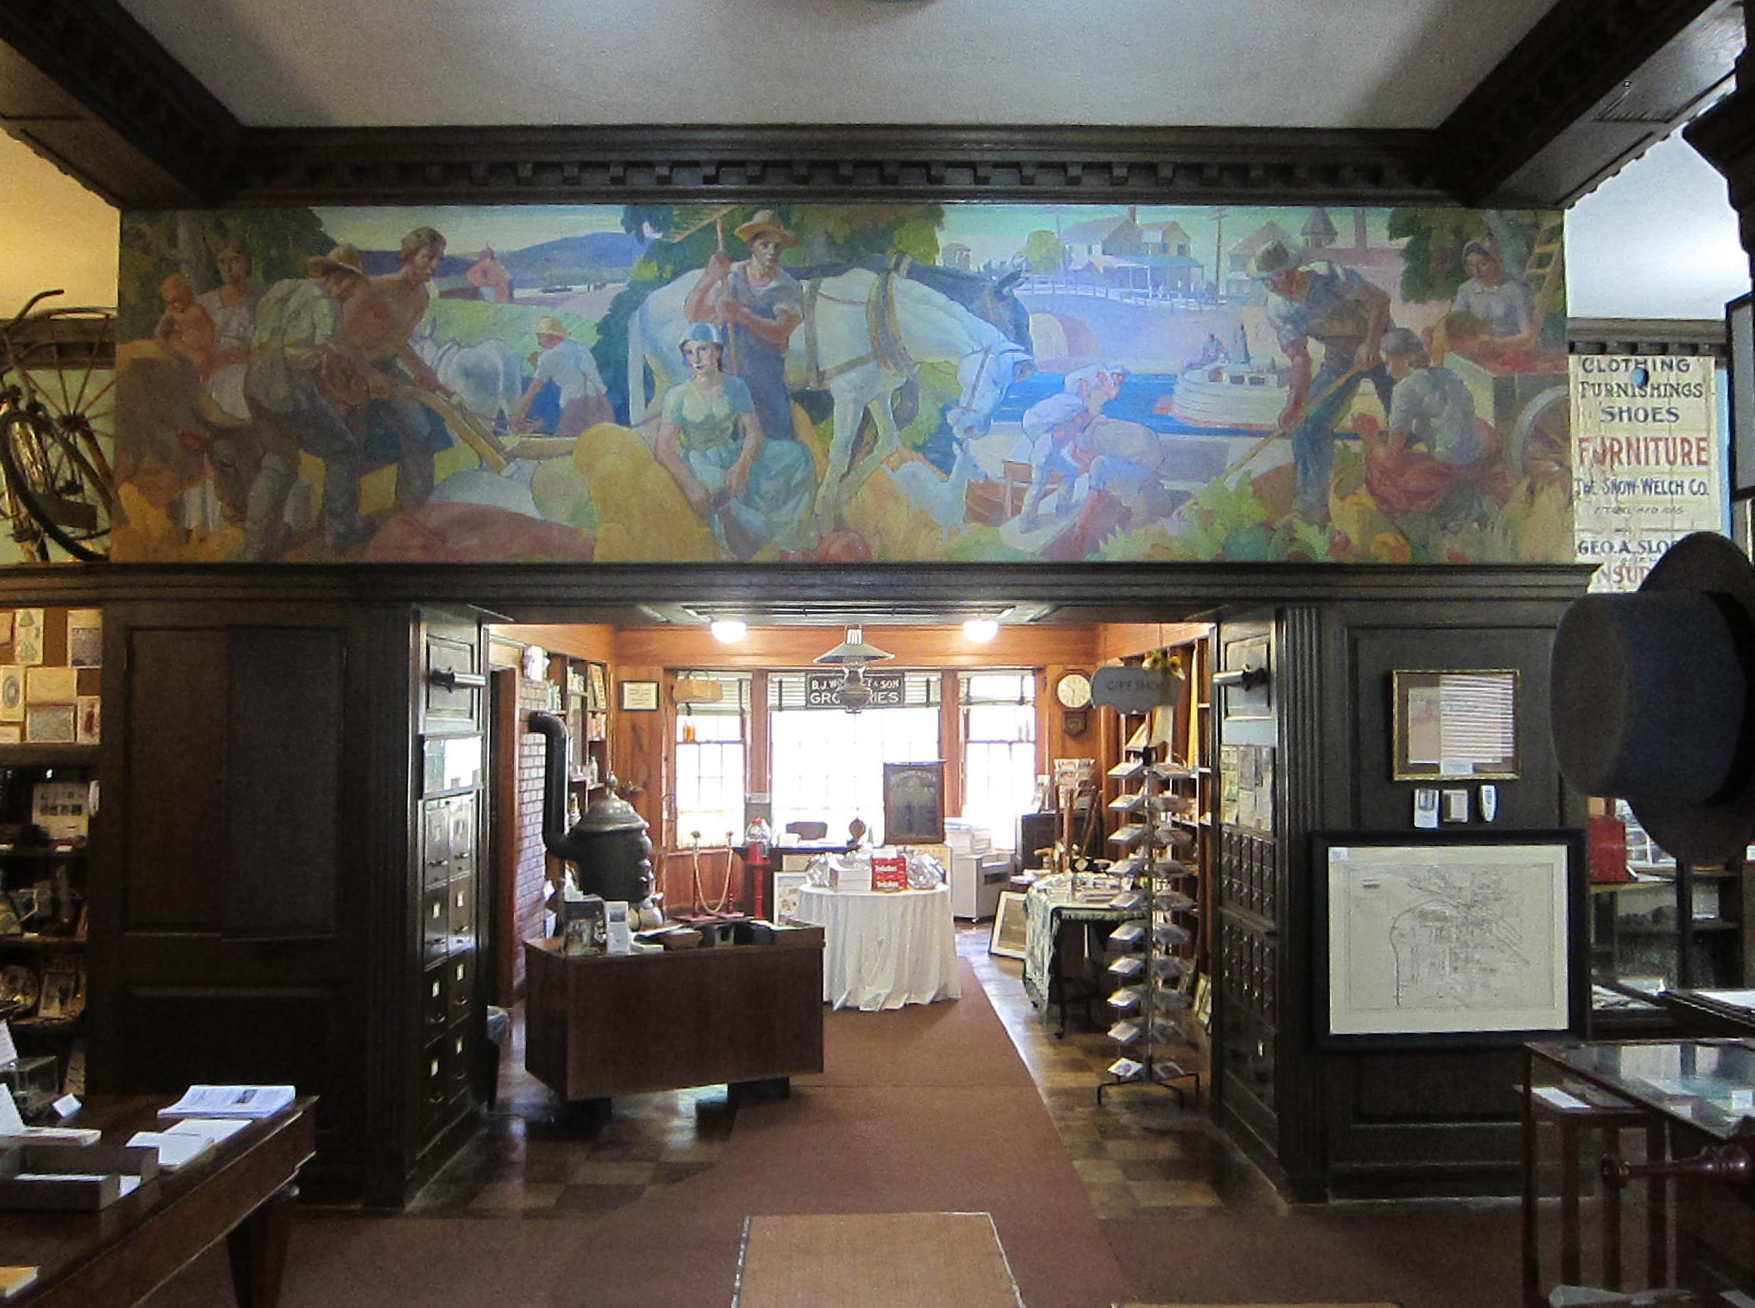 Carl W. Peters mural at the Perinton Historical Society